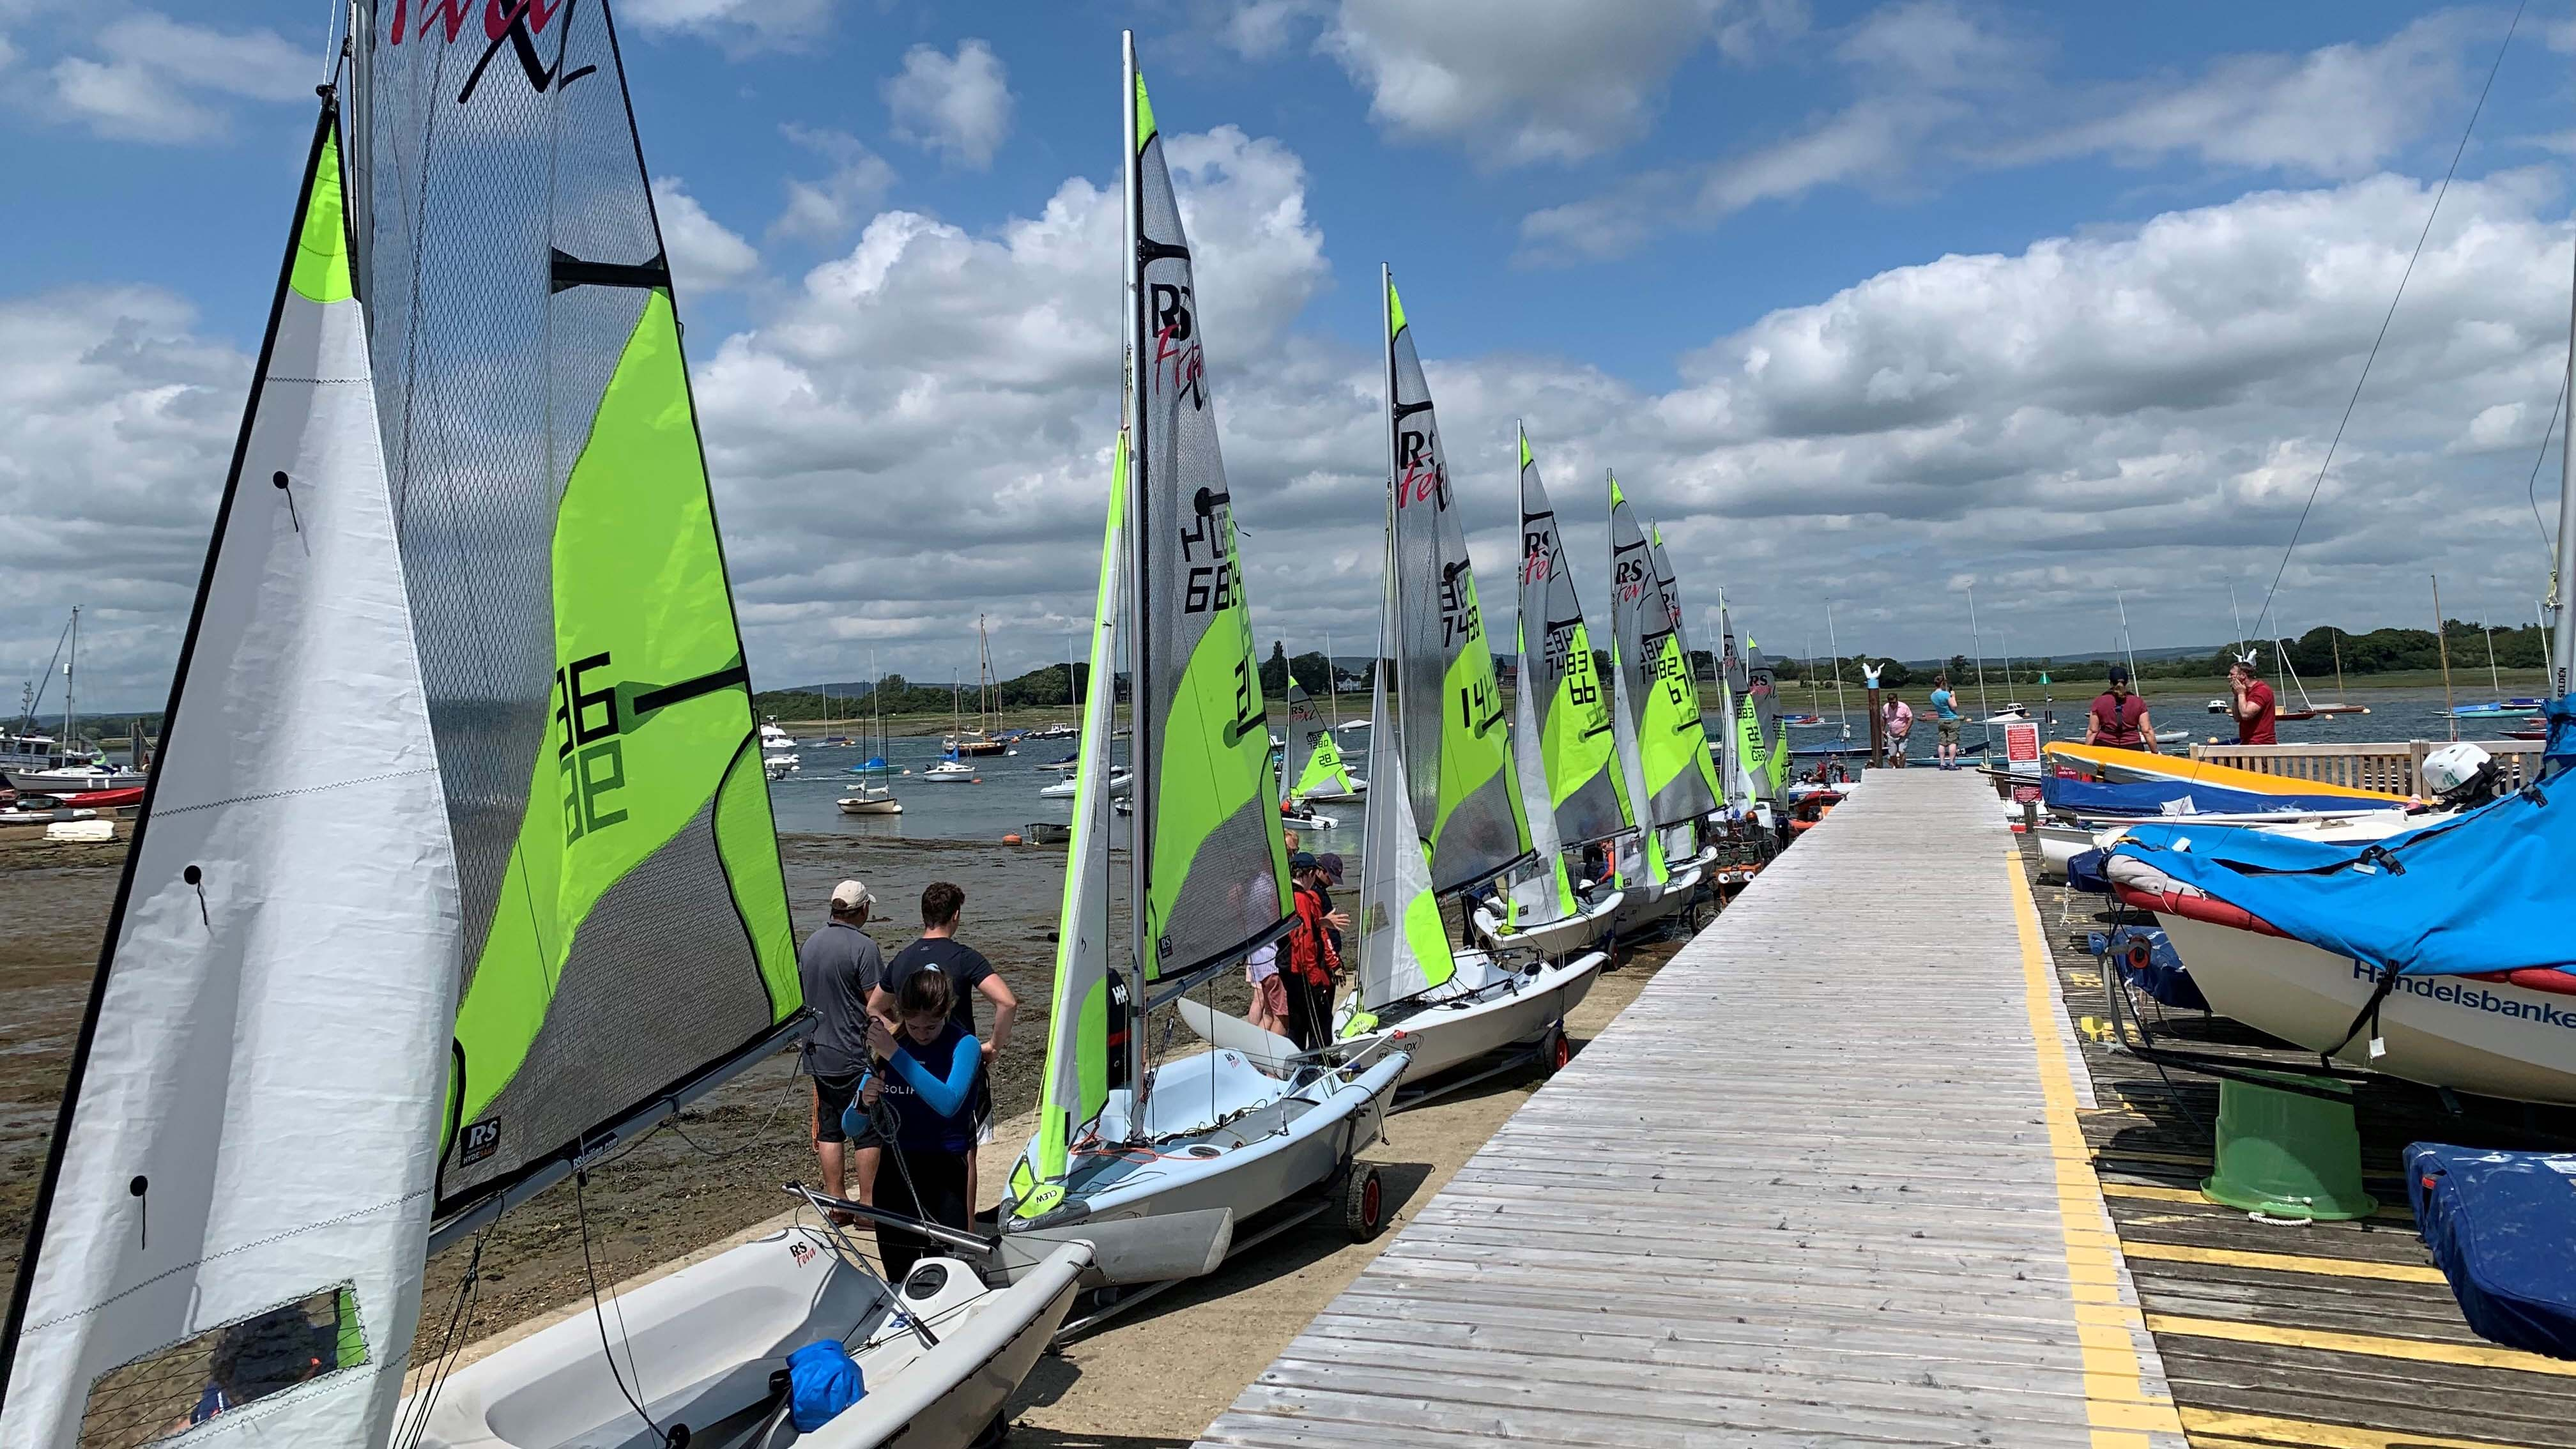 RS Fevers at the 67th Itchenor schools sailing All ready to race